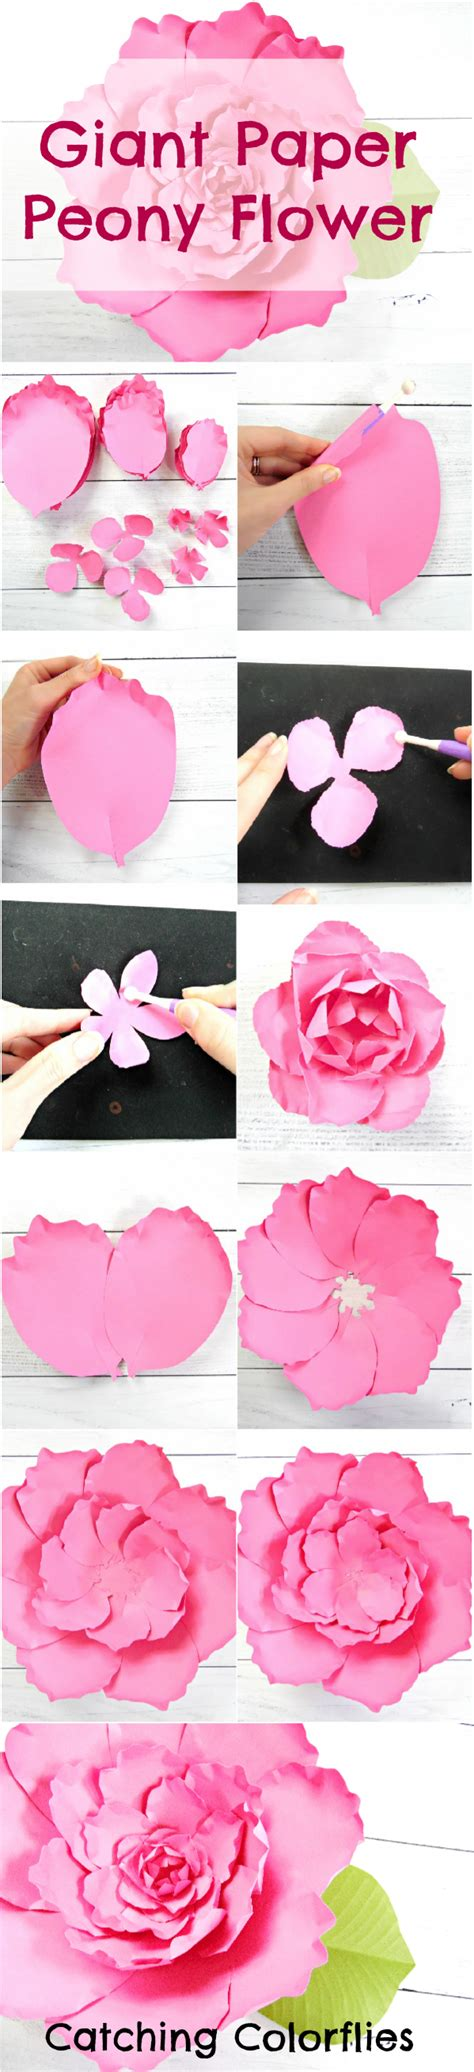 paper flower tutorial template giant peony paper flower tutorial catching colorlfies